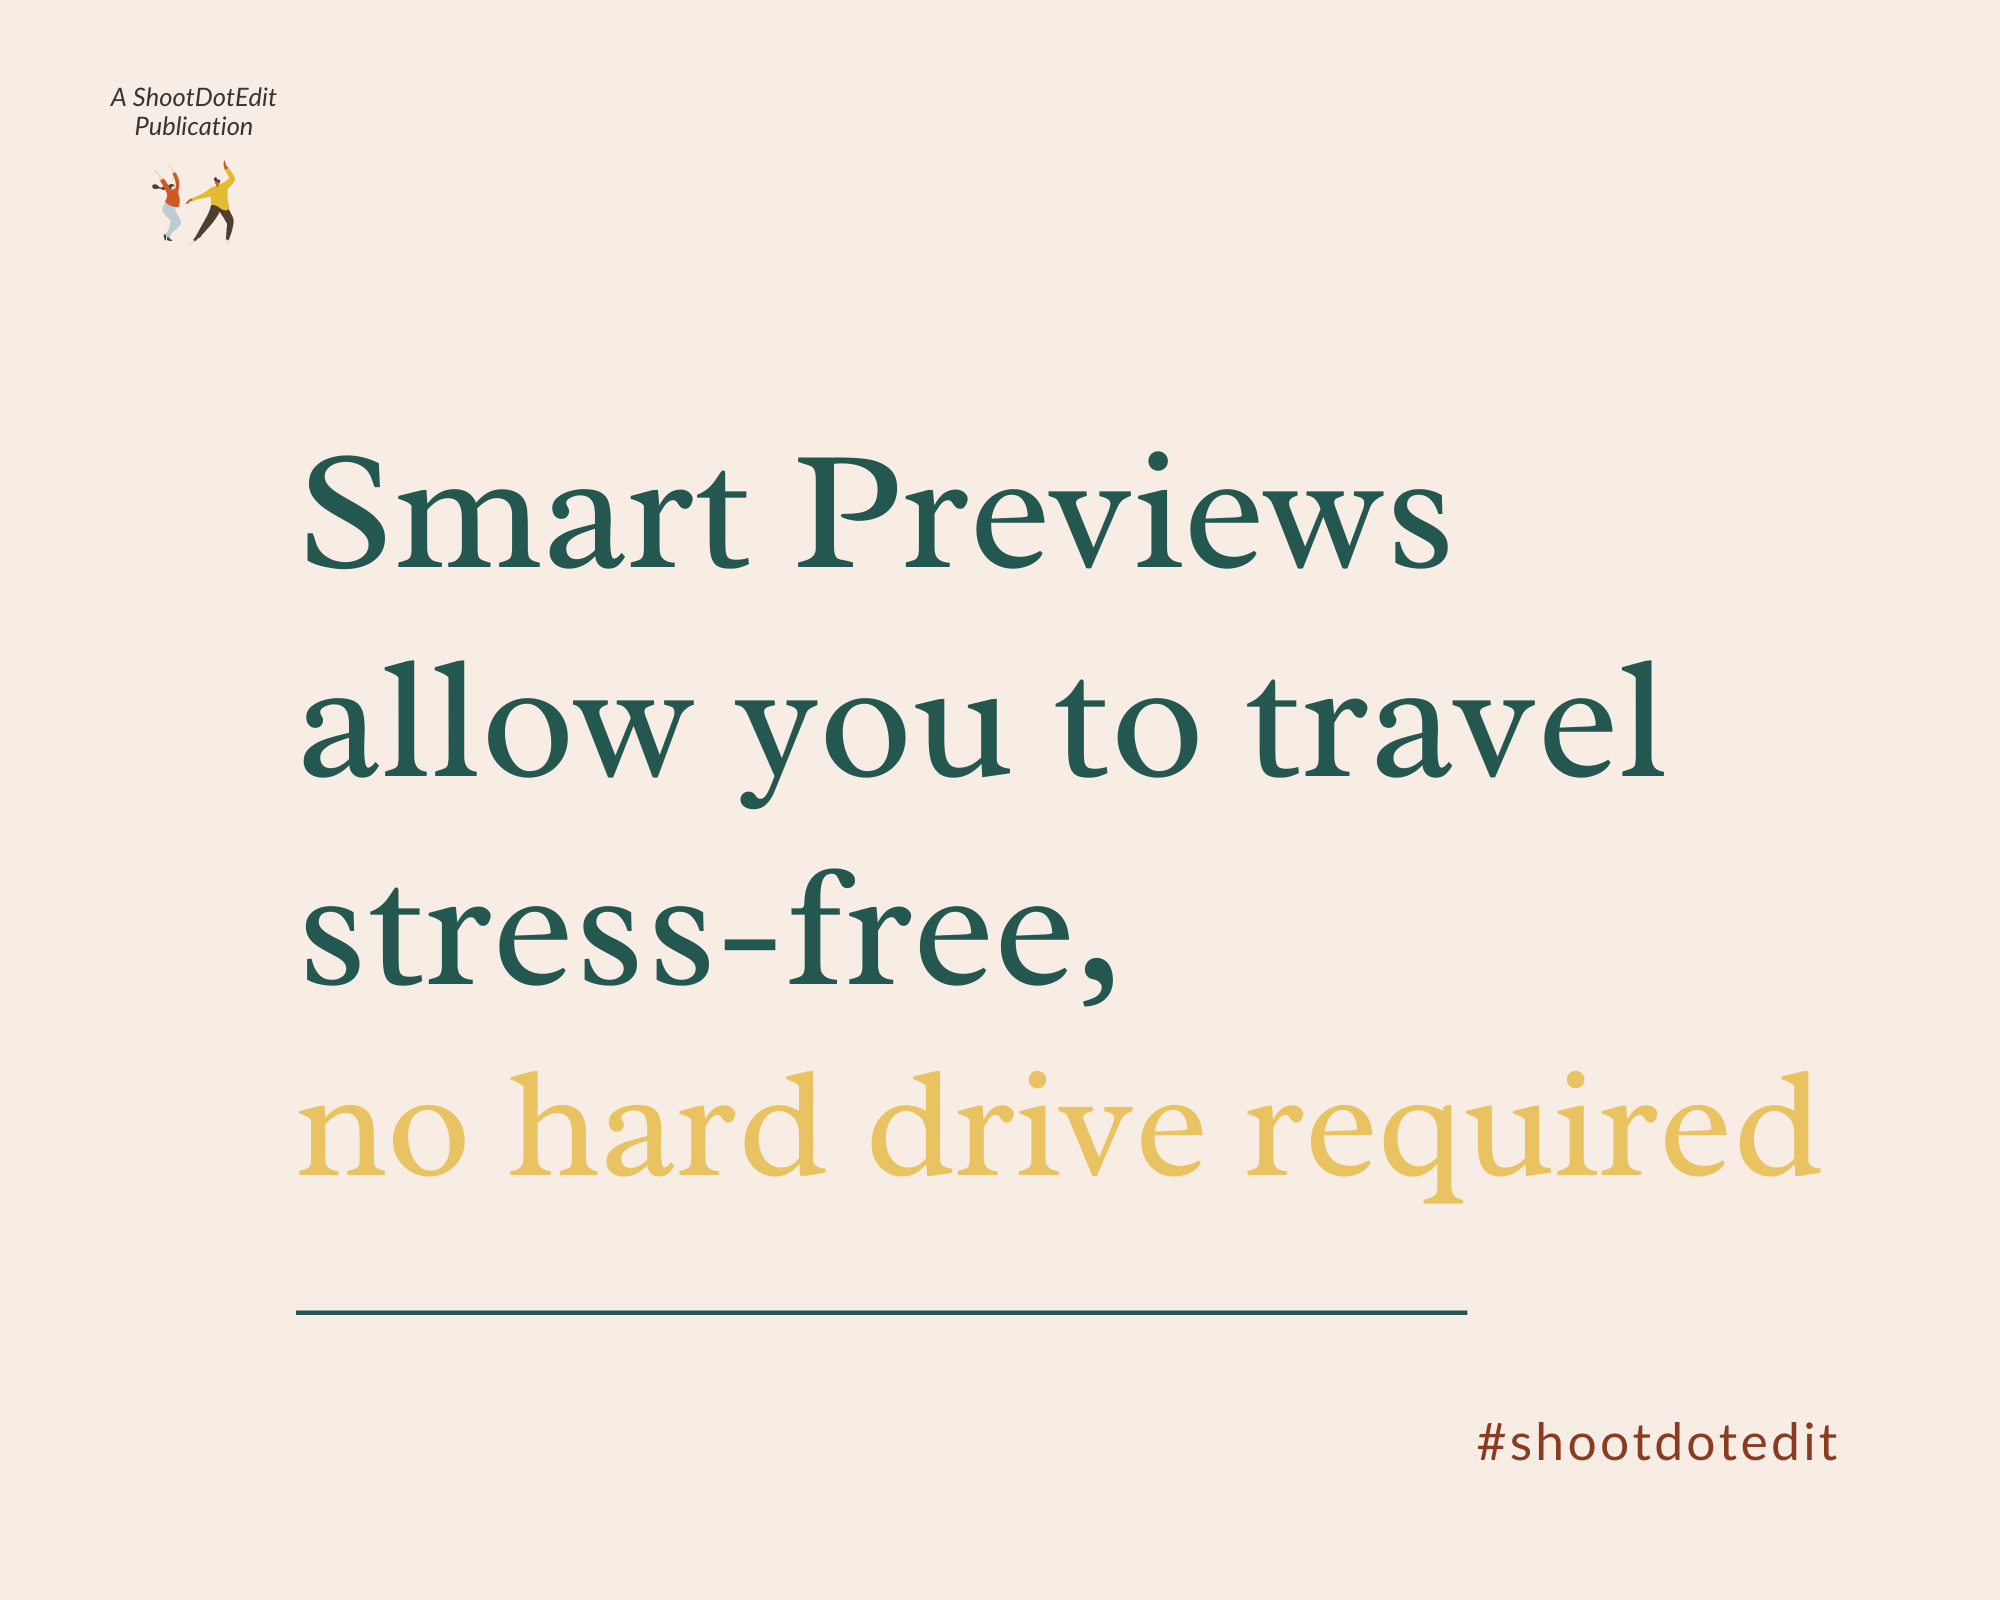 Infographic stating smart previews allow you to travel stress free no hard drive required